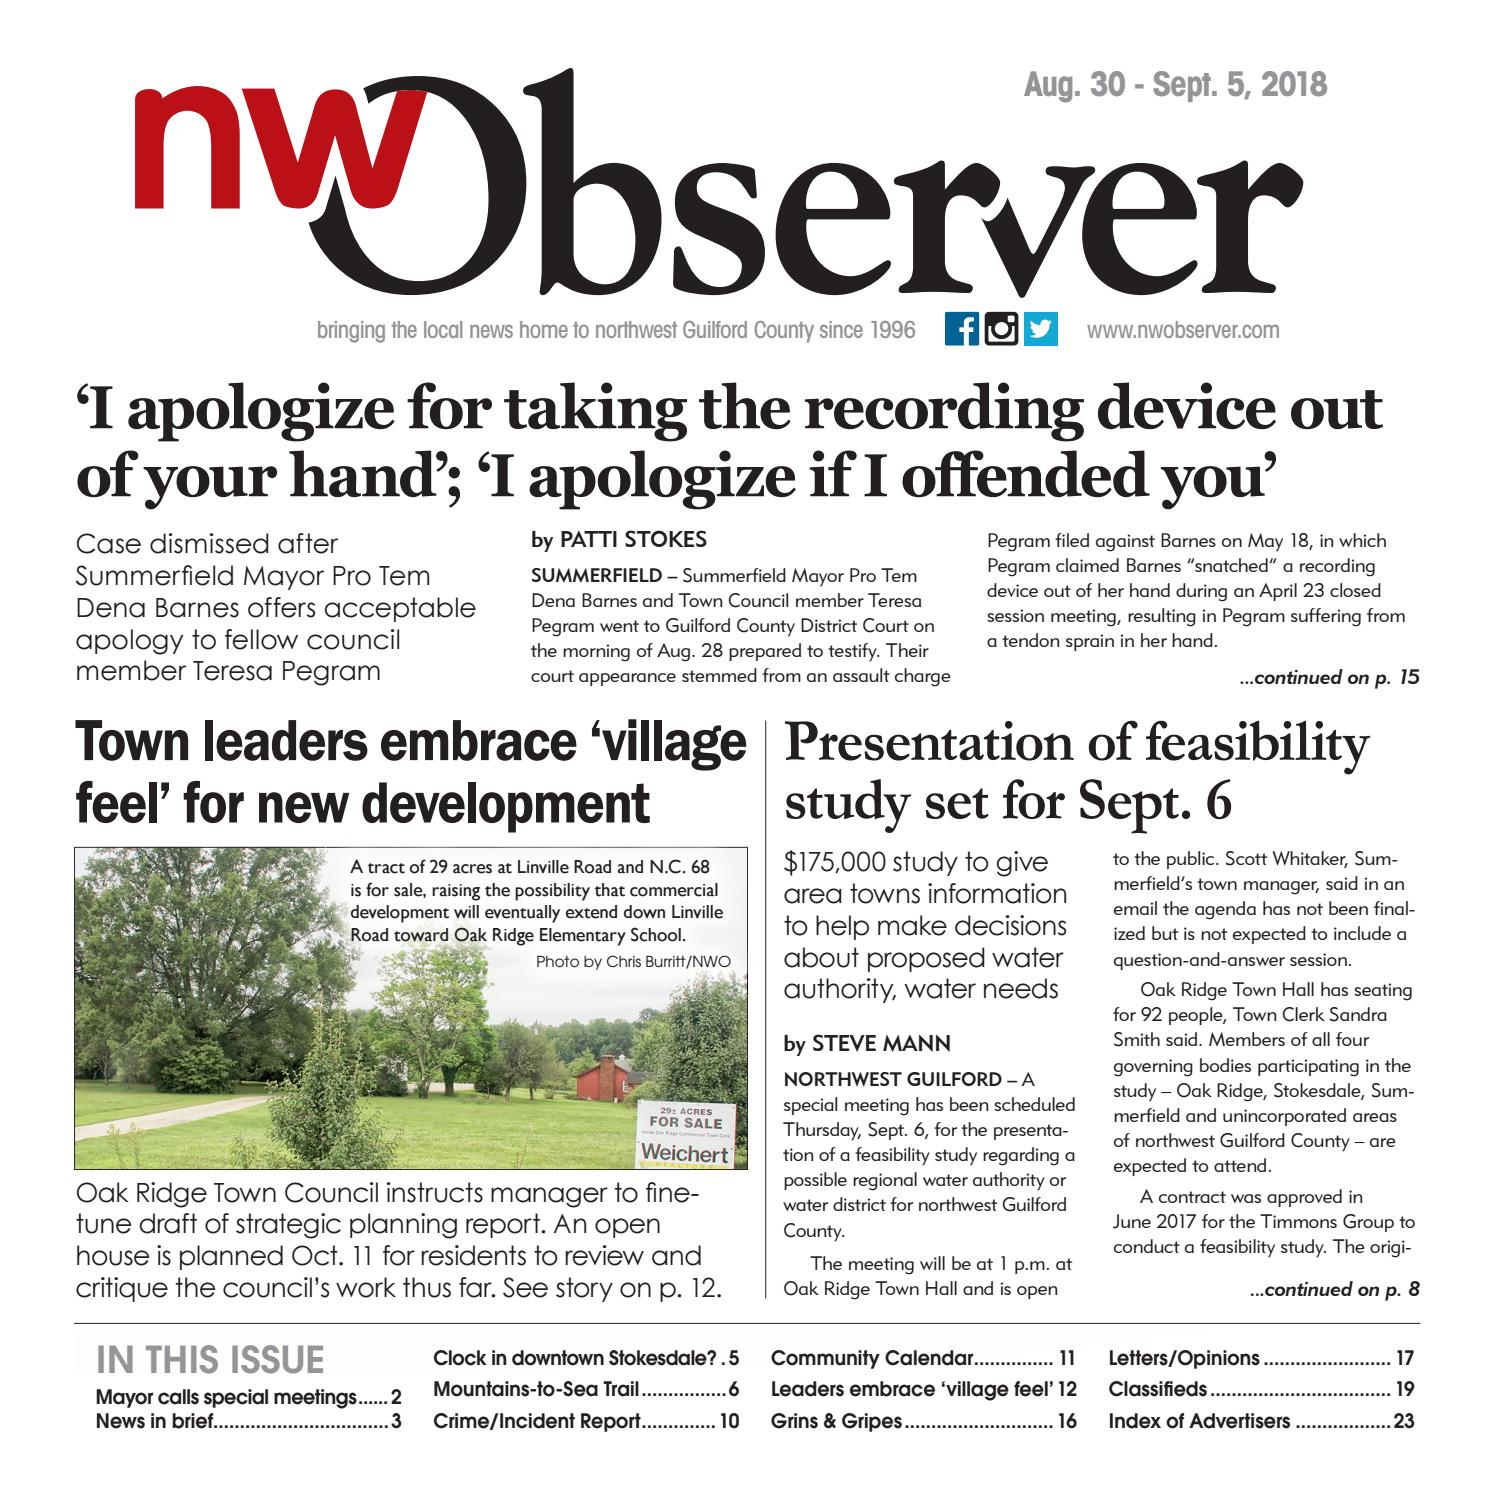 Northwest Observer I August 30 - September 5, 2018 by